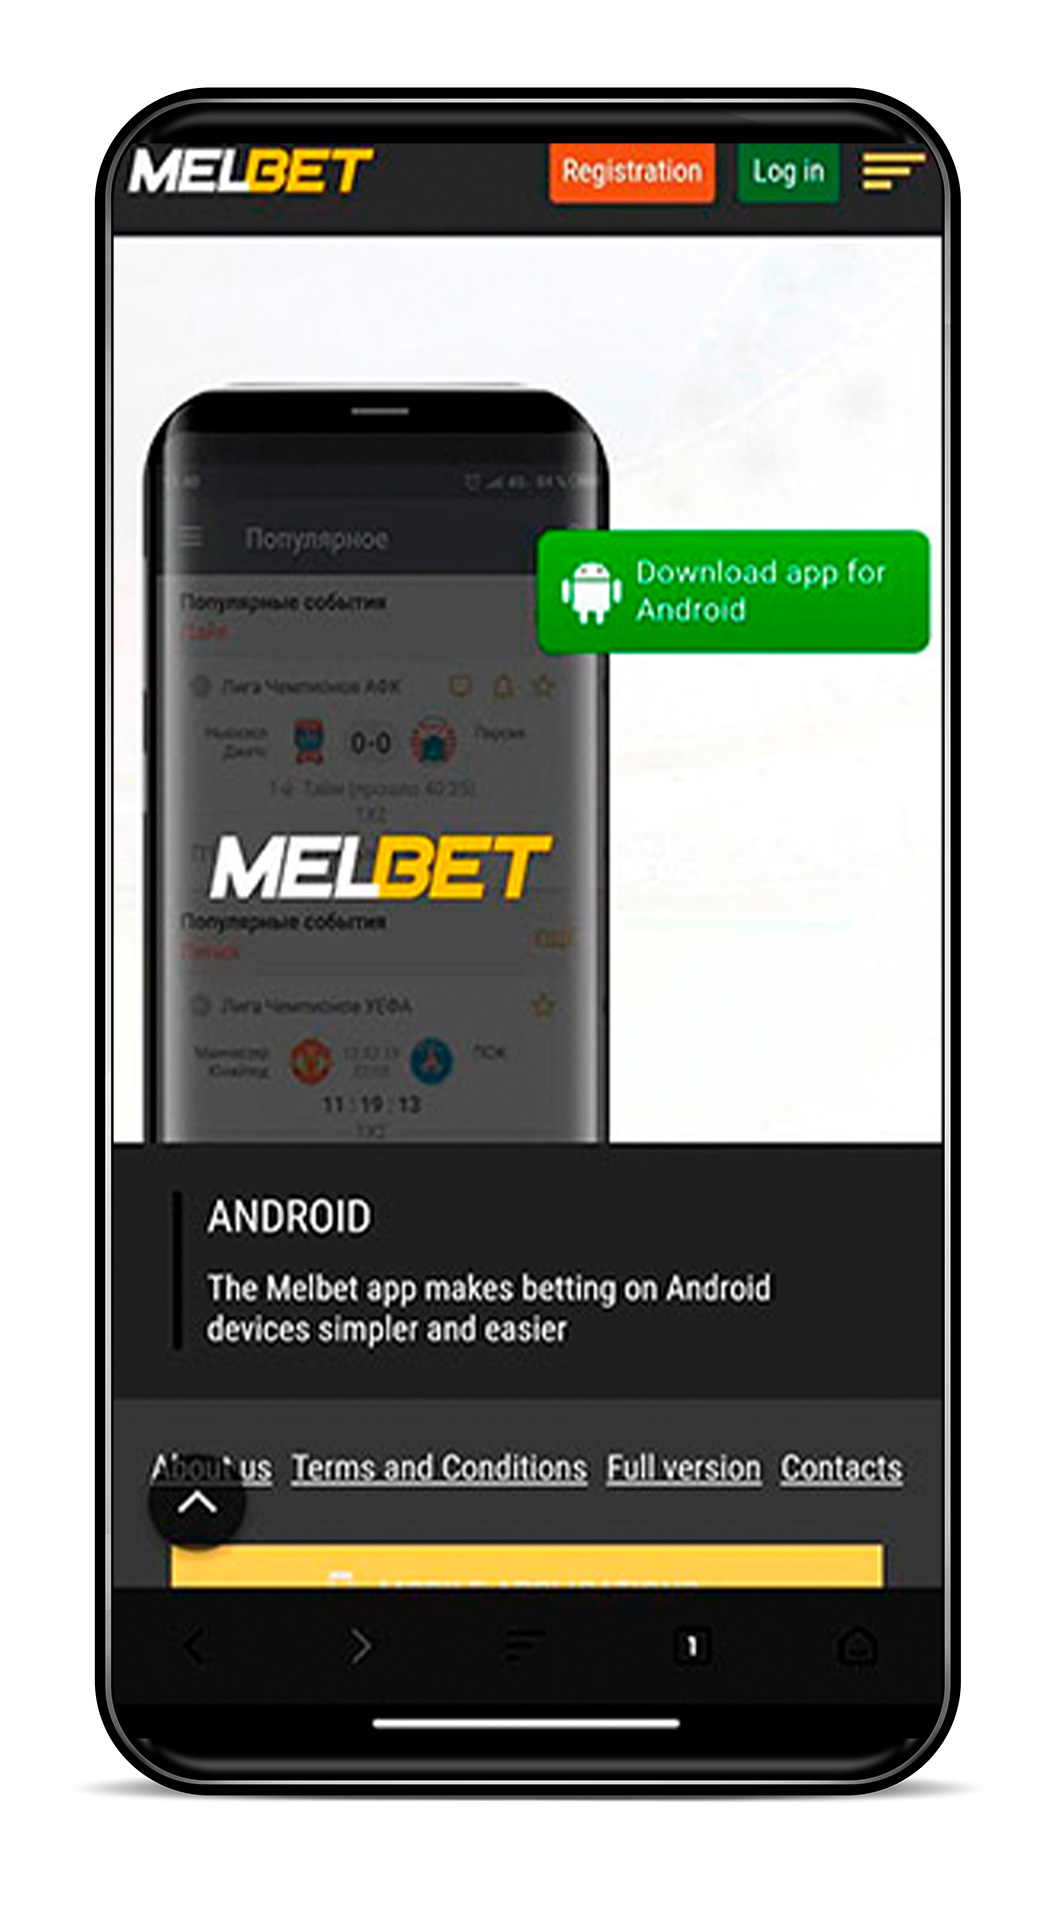 Afetr downloading you will be able to install the Melbet app.